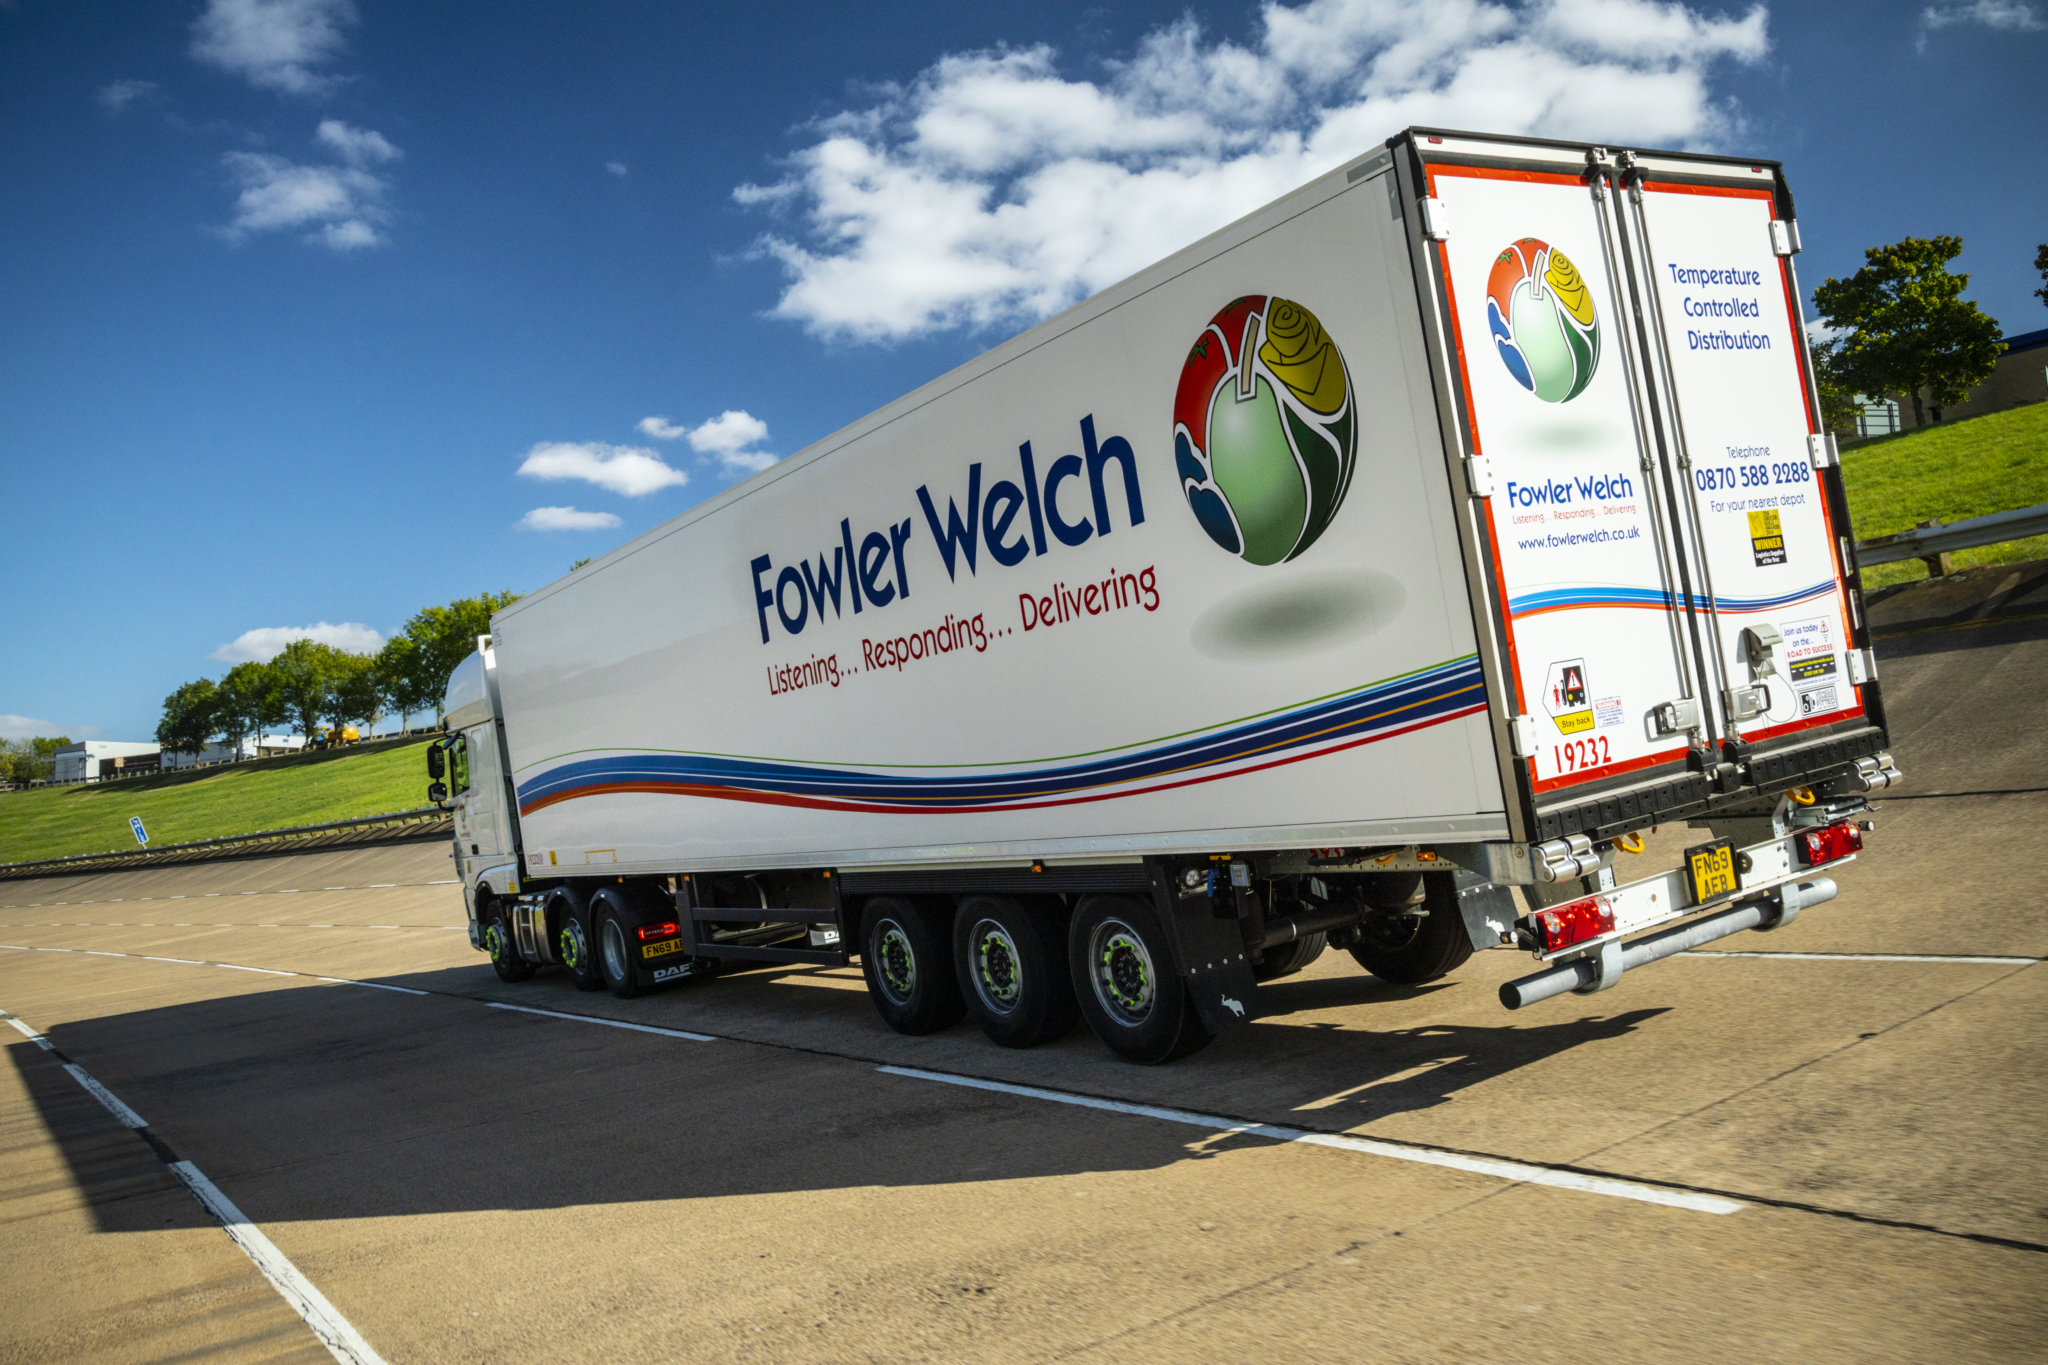 Fowler Welch renews contract with Bandvulc Tyres